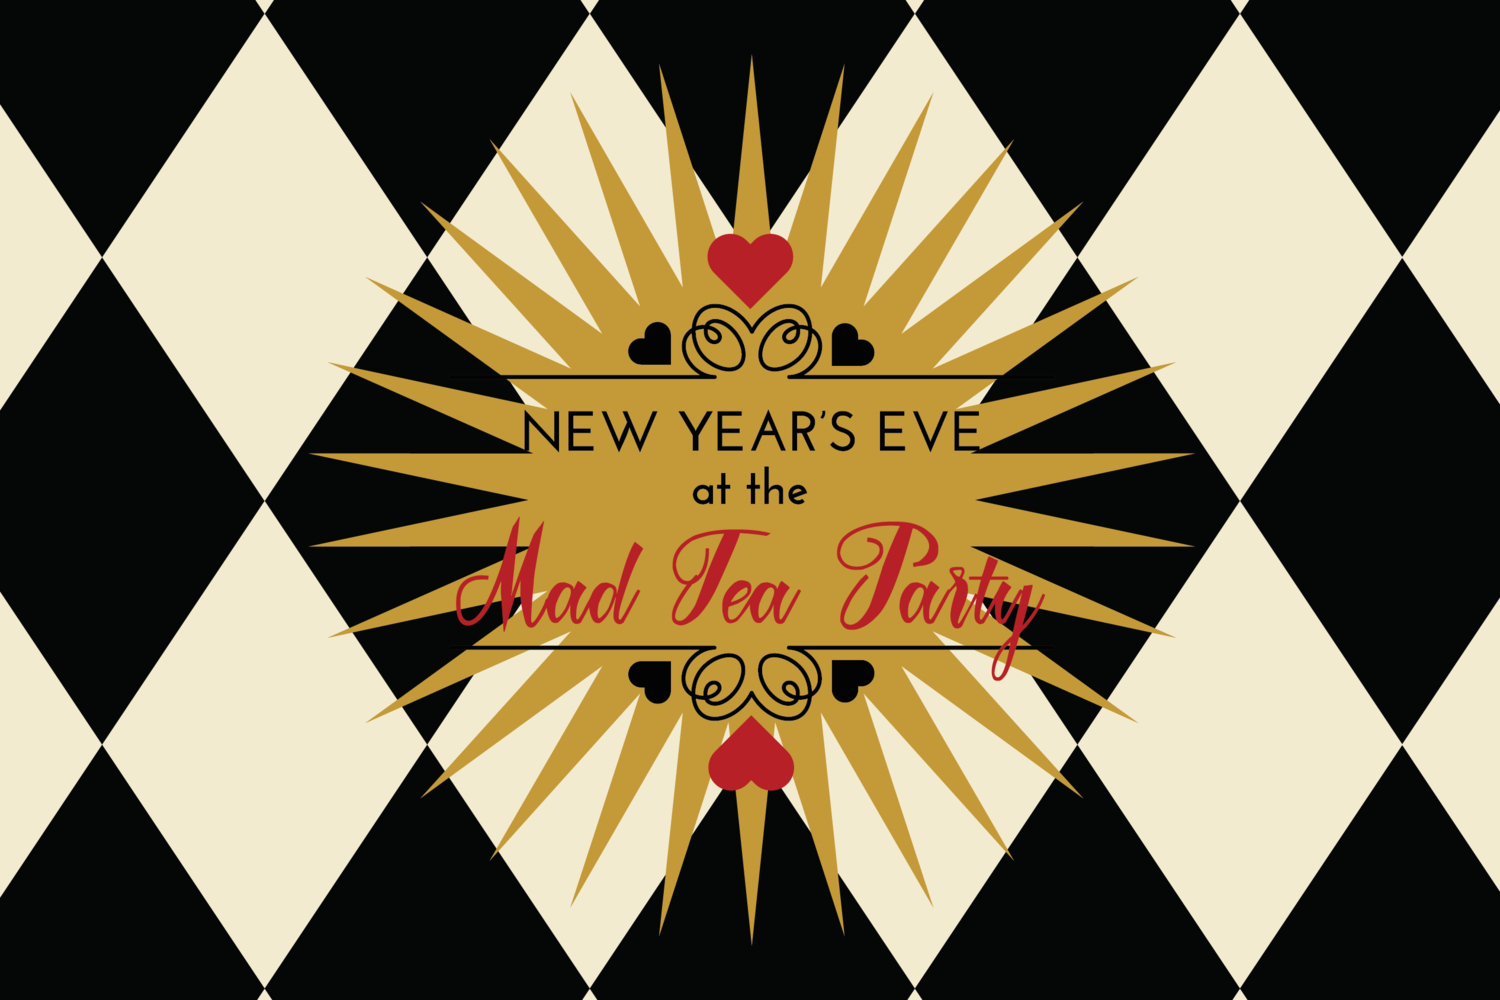 New Year's Eve at the Mad Tea Party